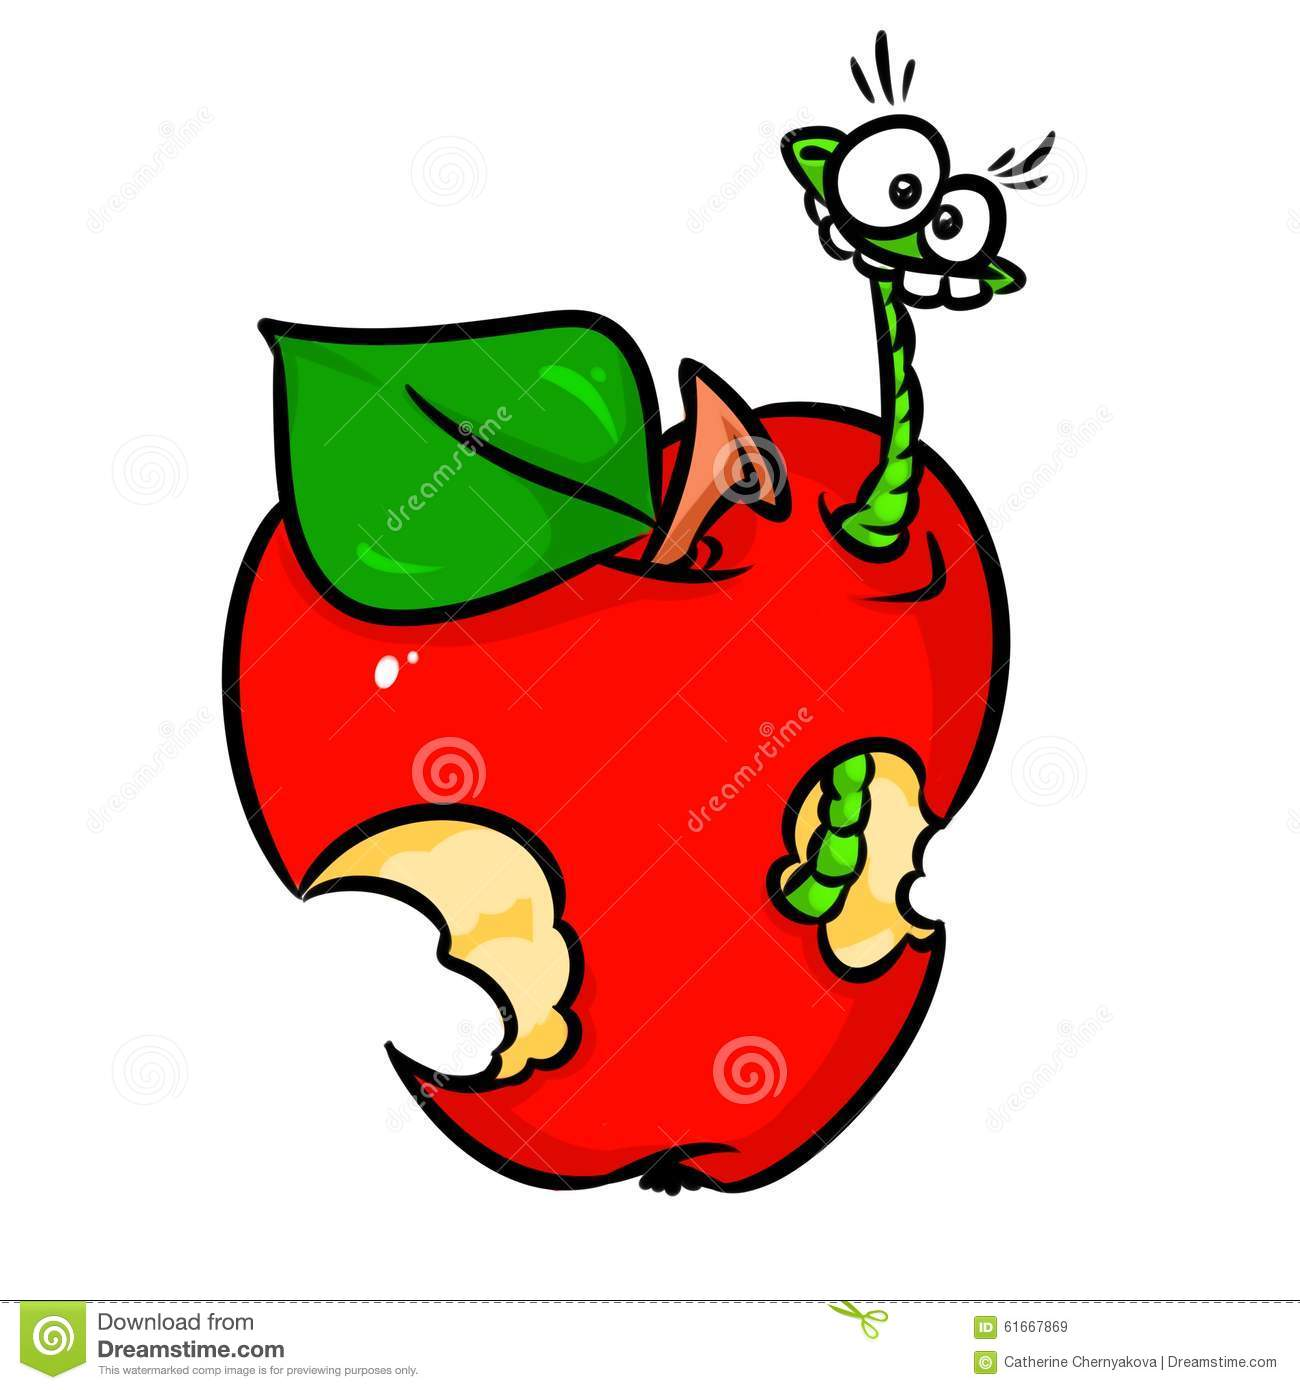 Wormy bad caterpillar apple cartoon illustration isolated image.